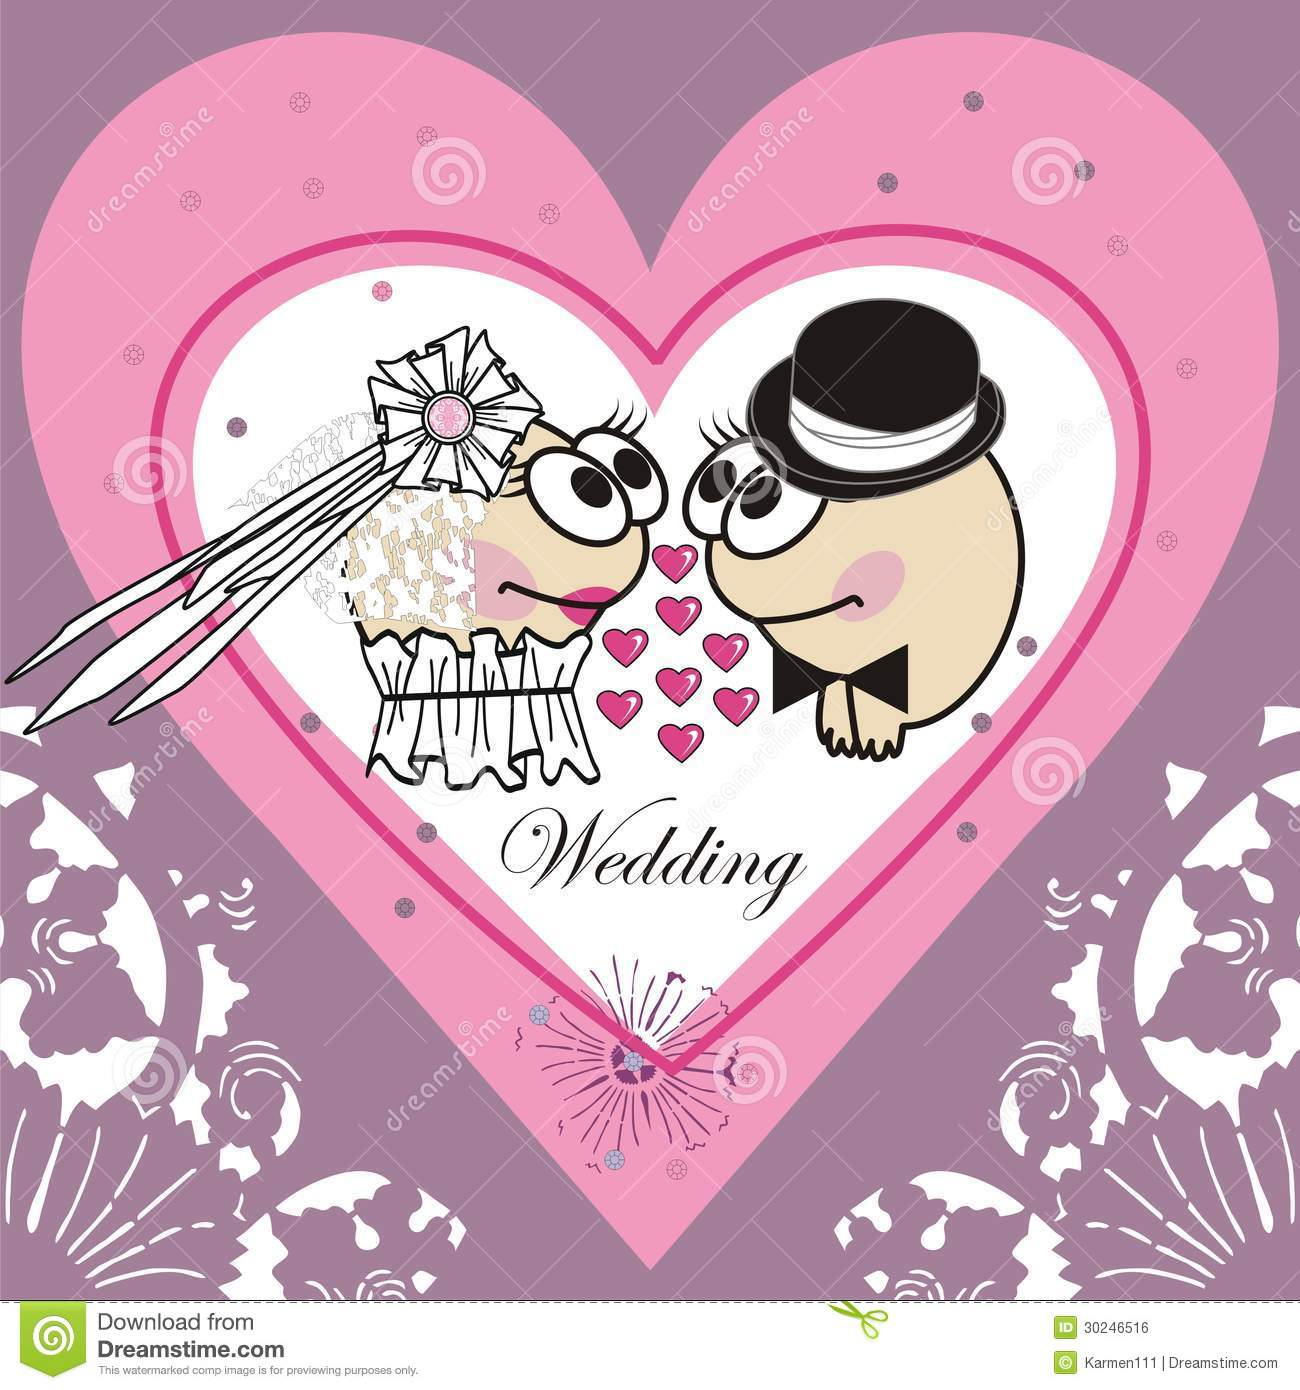 Invitation wedding card (Animated cartoon).